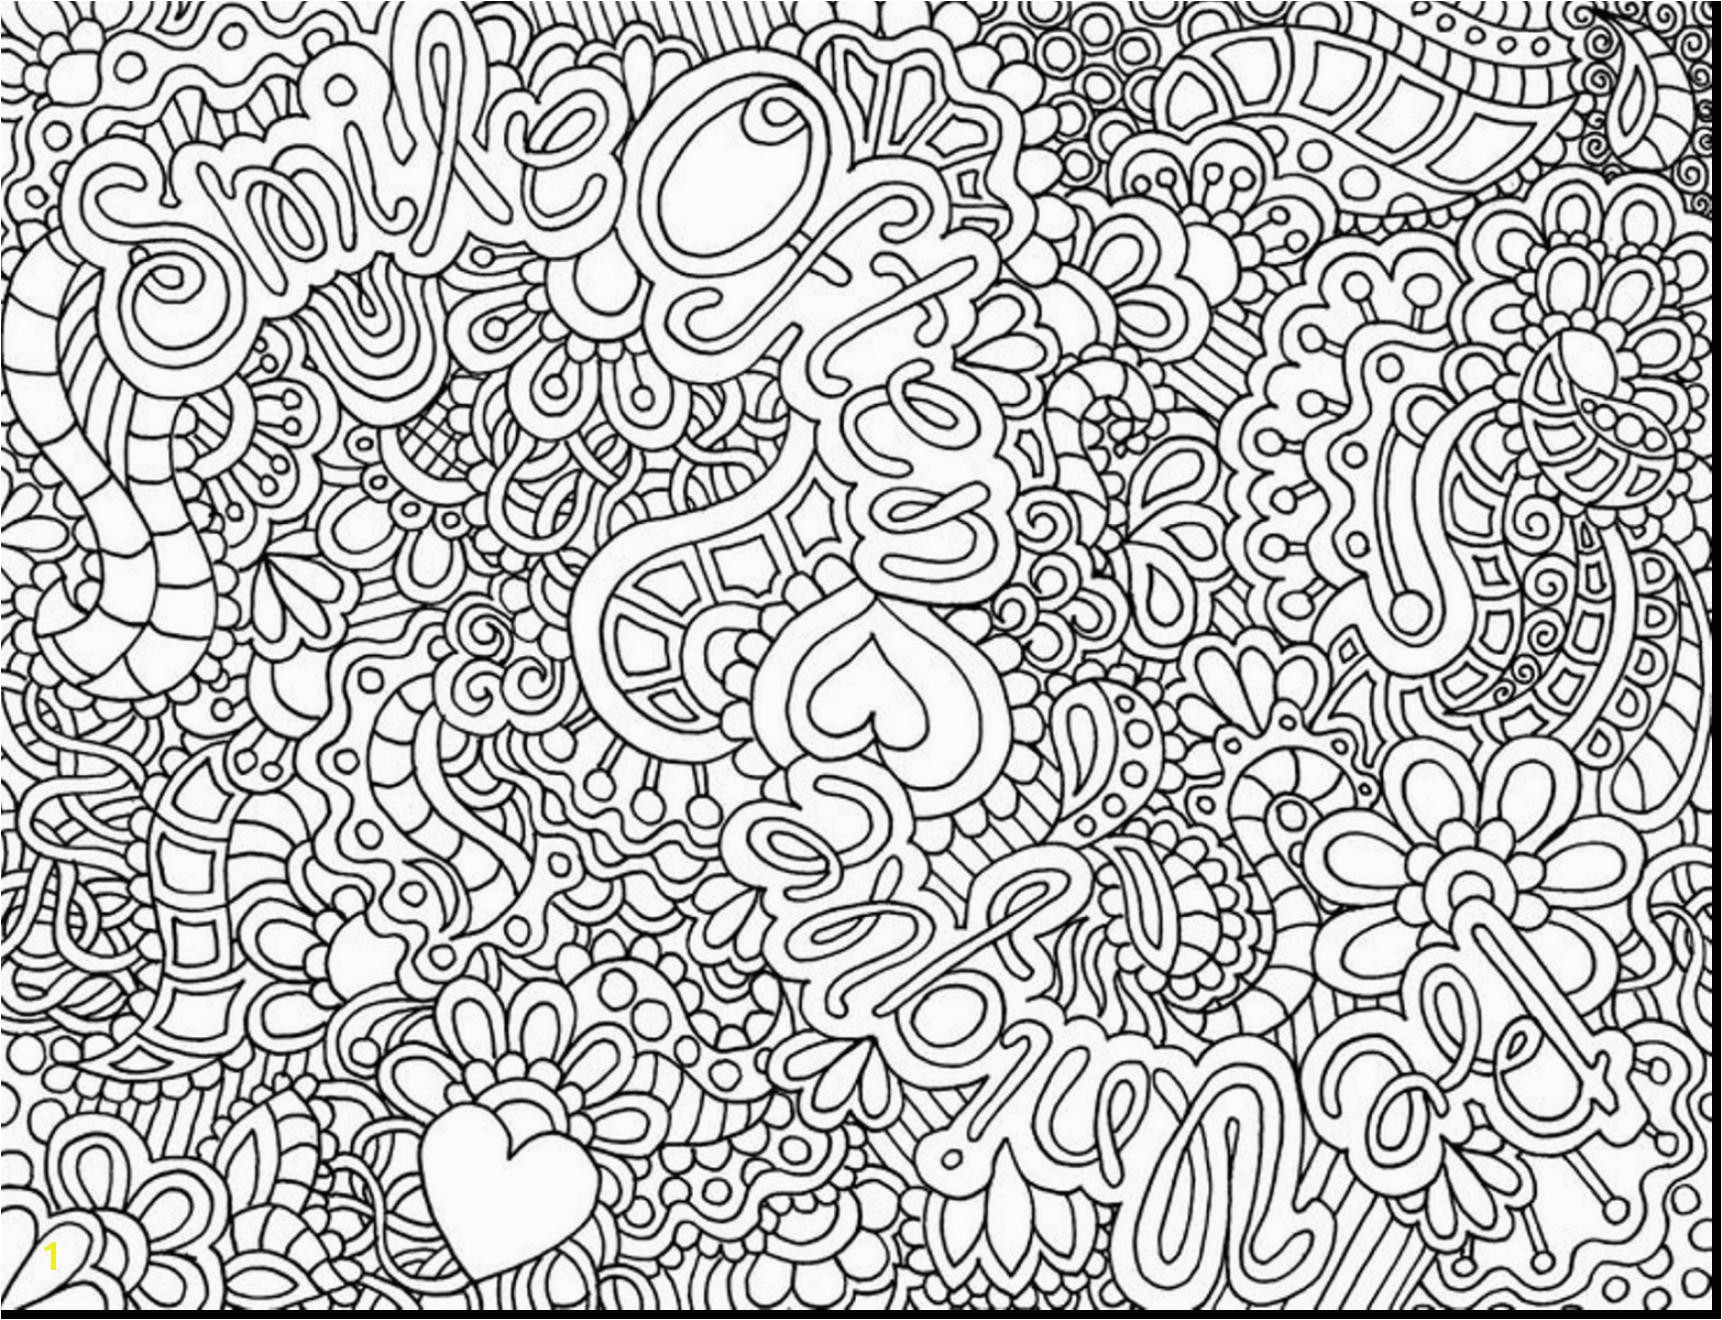 Free Mandala Coloring Pages To Print Printable Adults For Easy - Free Printable Inspirational Coloring Pages